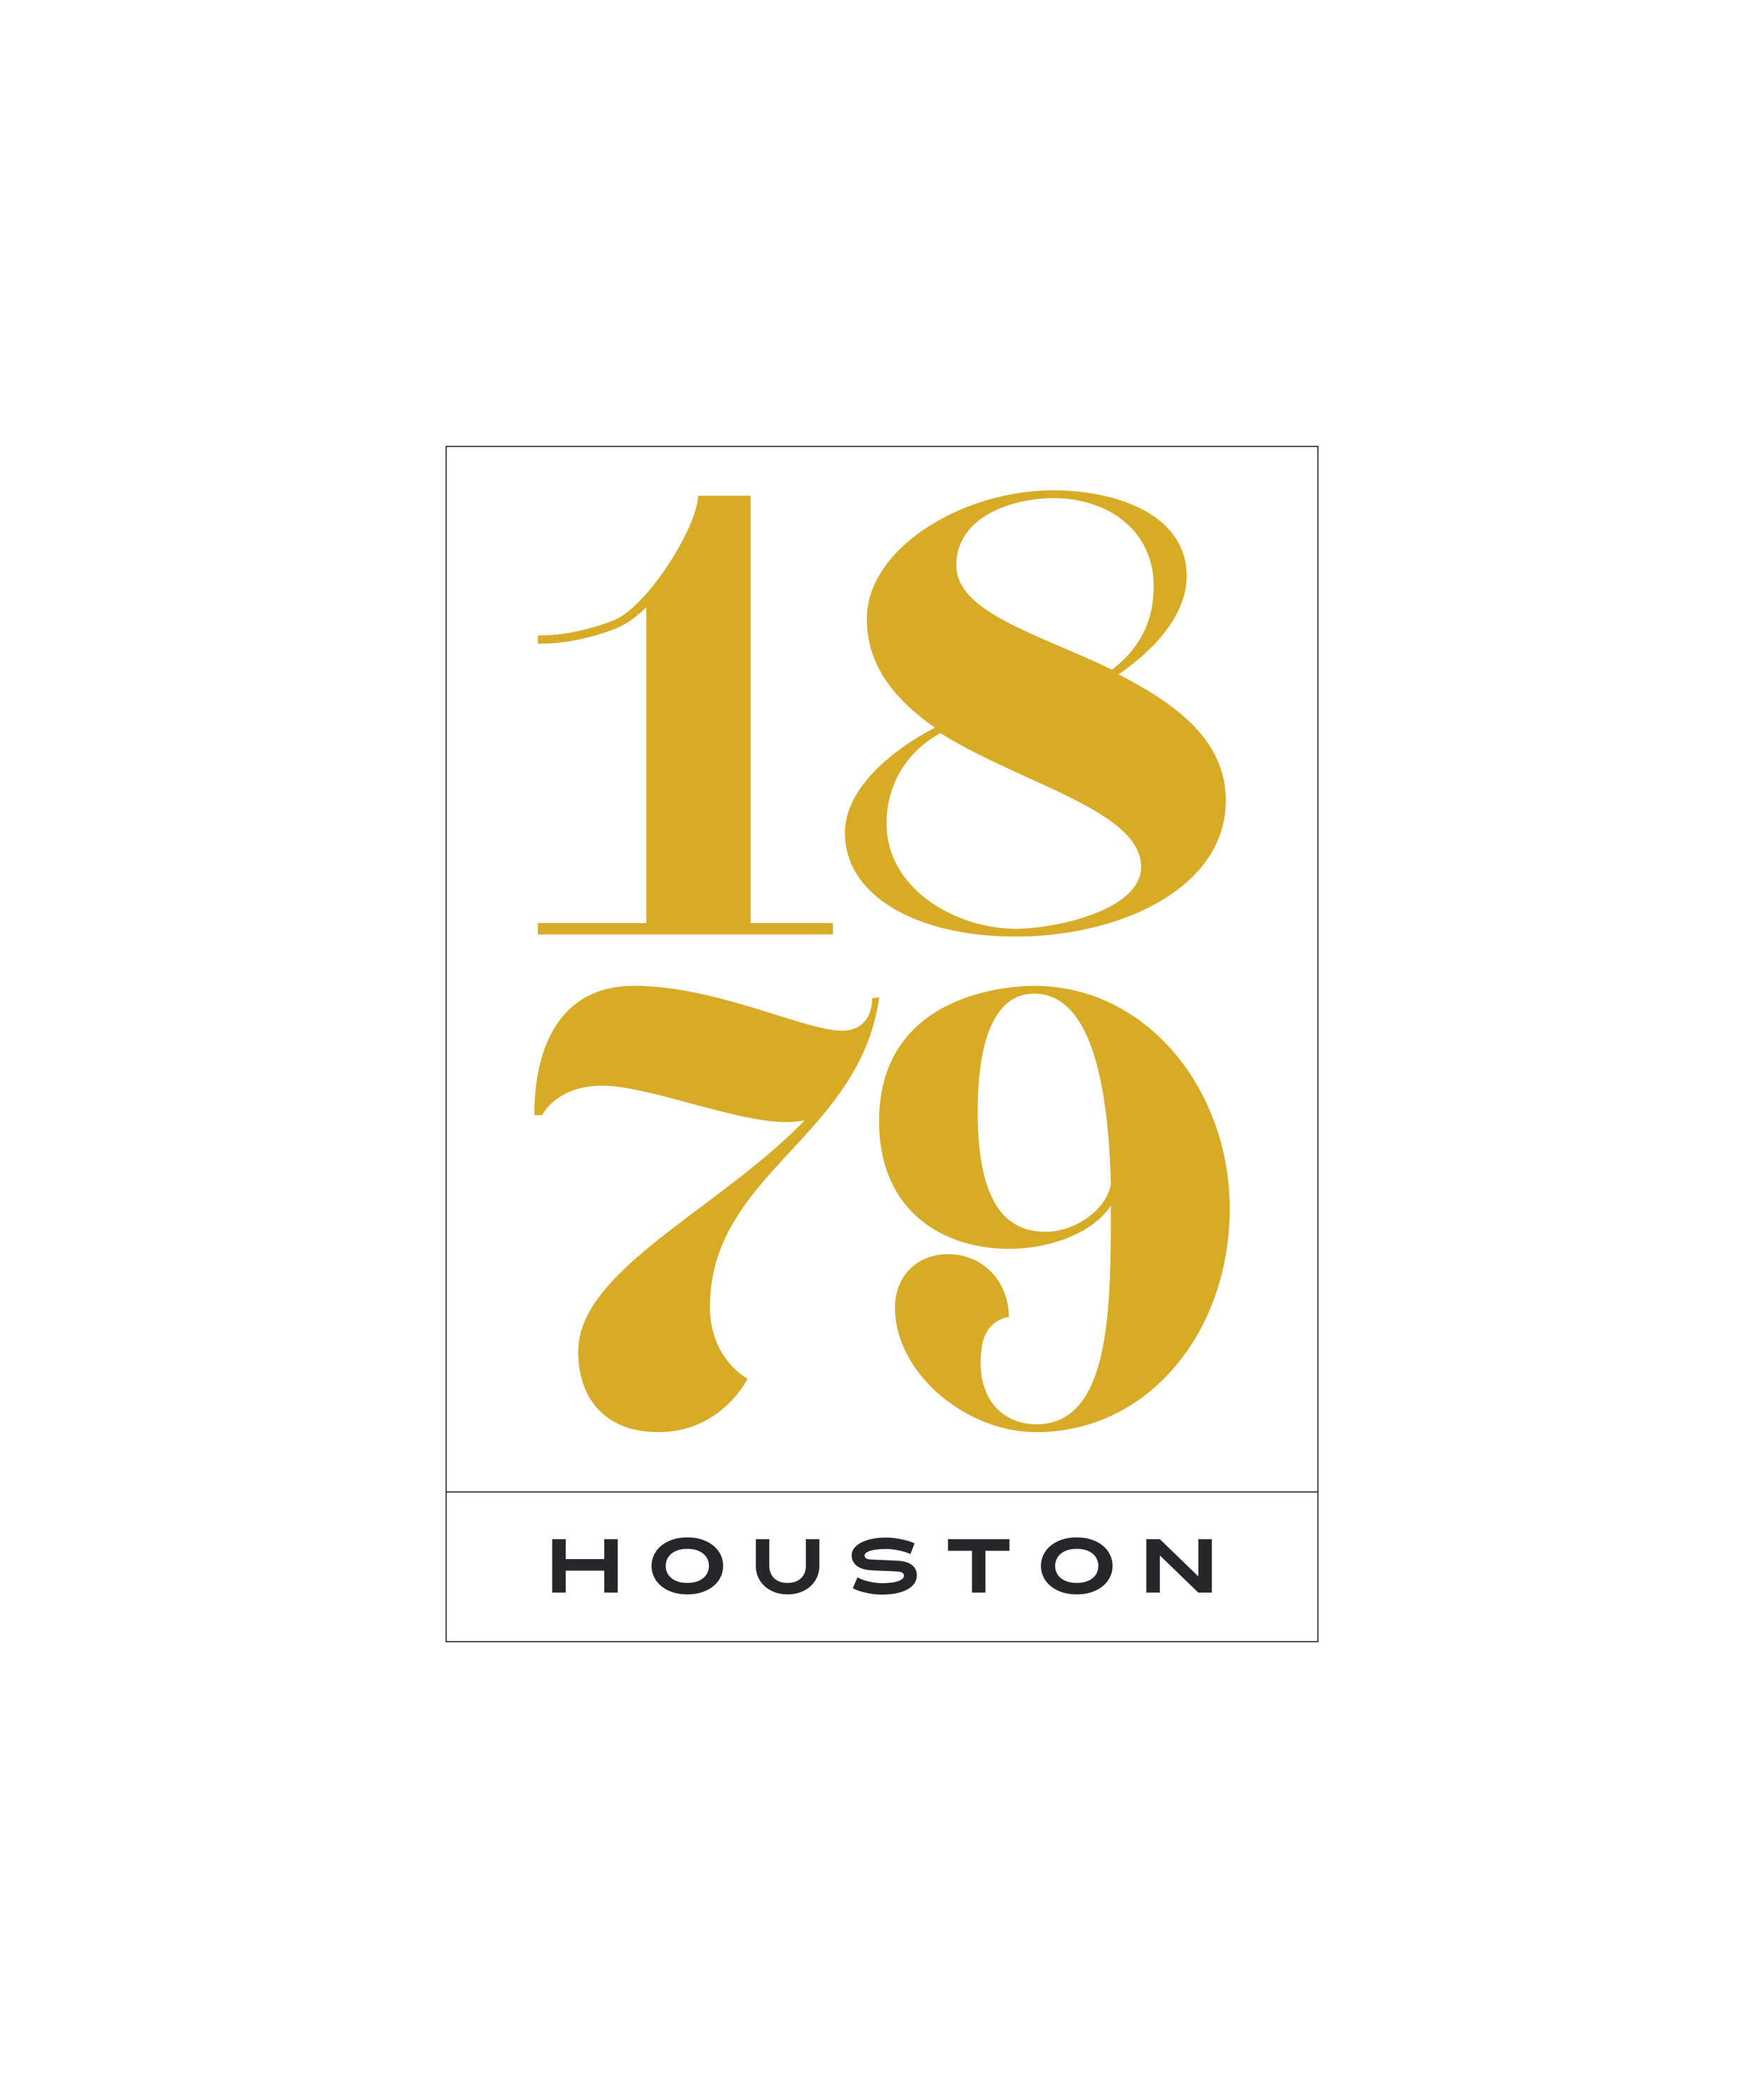 1879-logo_stacked-gold.jpg